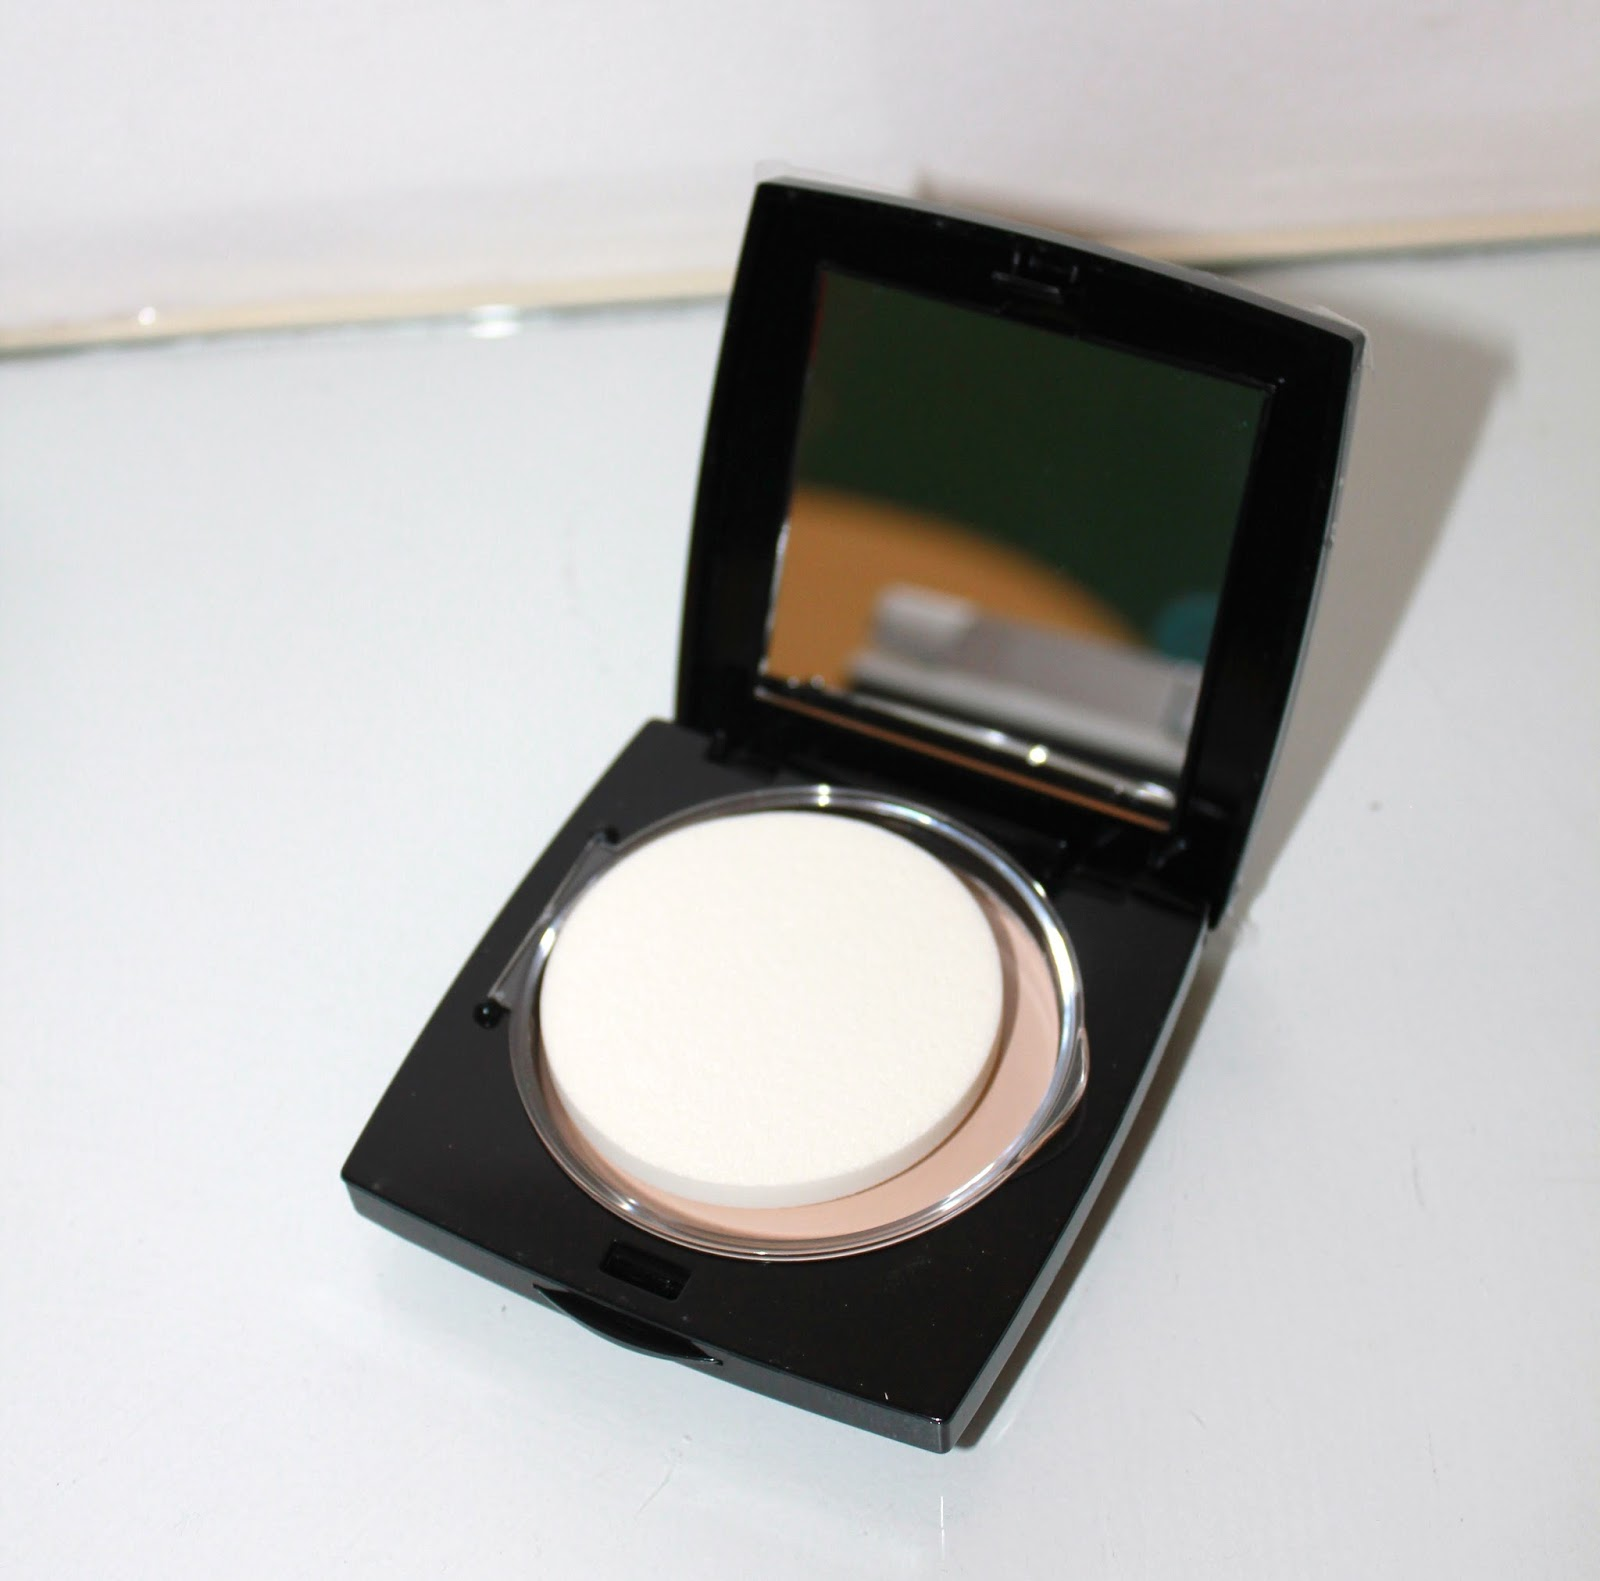 HD Brows Powder Foundation Review